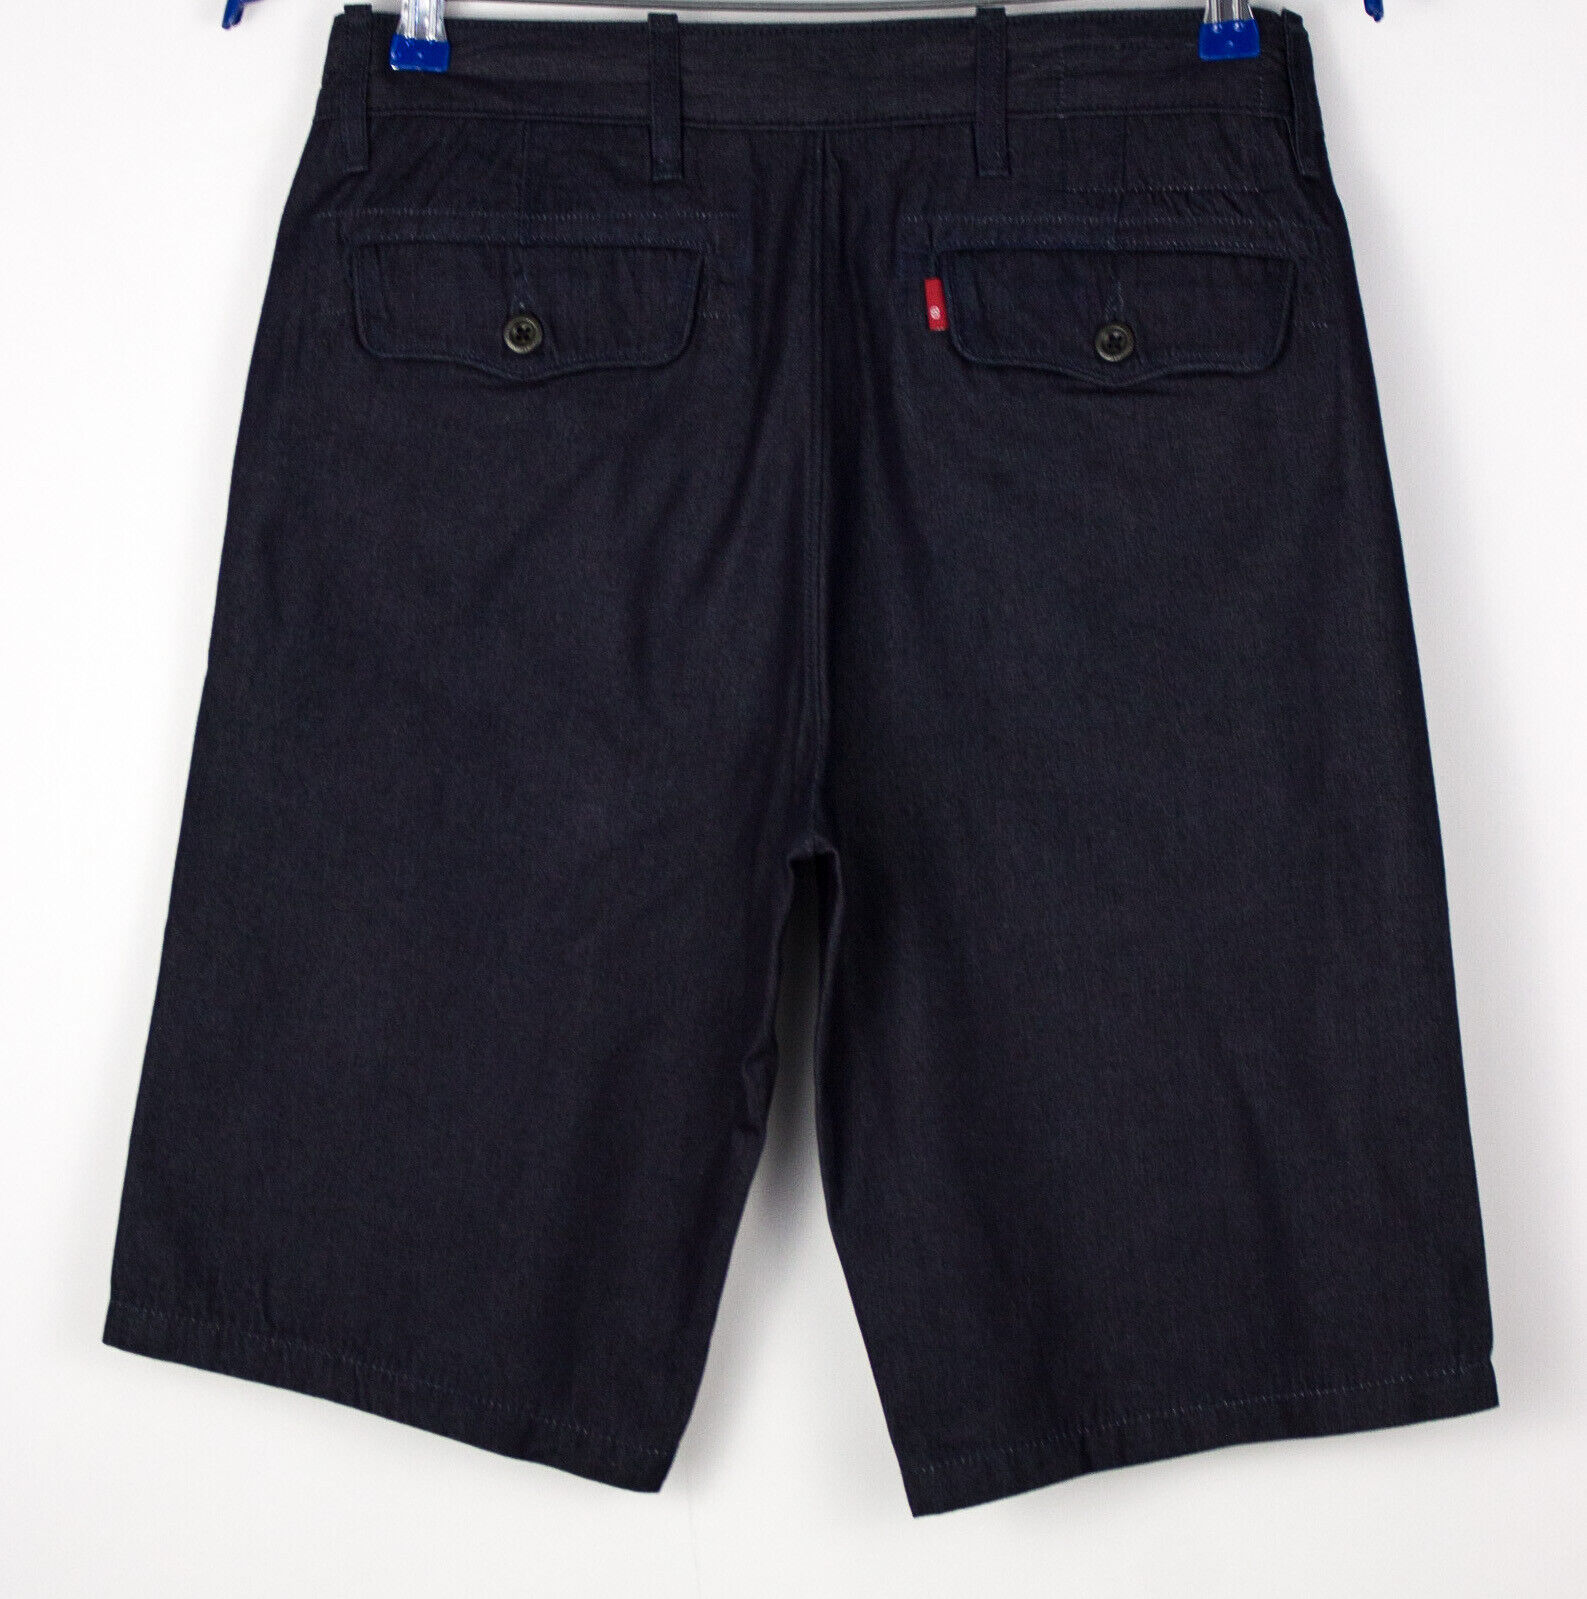 Levi's strauss & co hommes décontracté short chino bermuda taille w30 alz1155